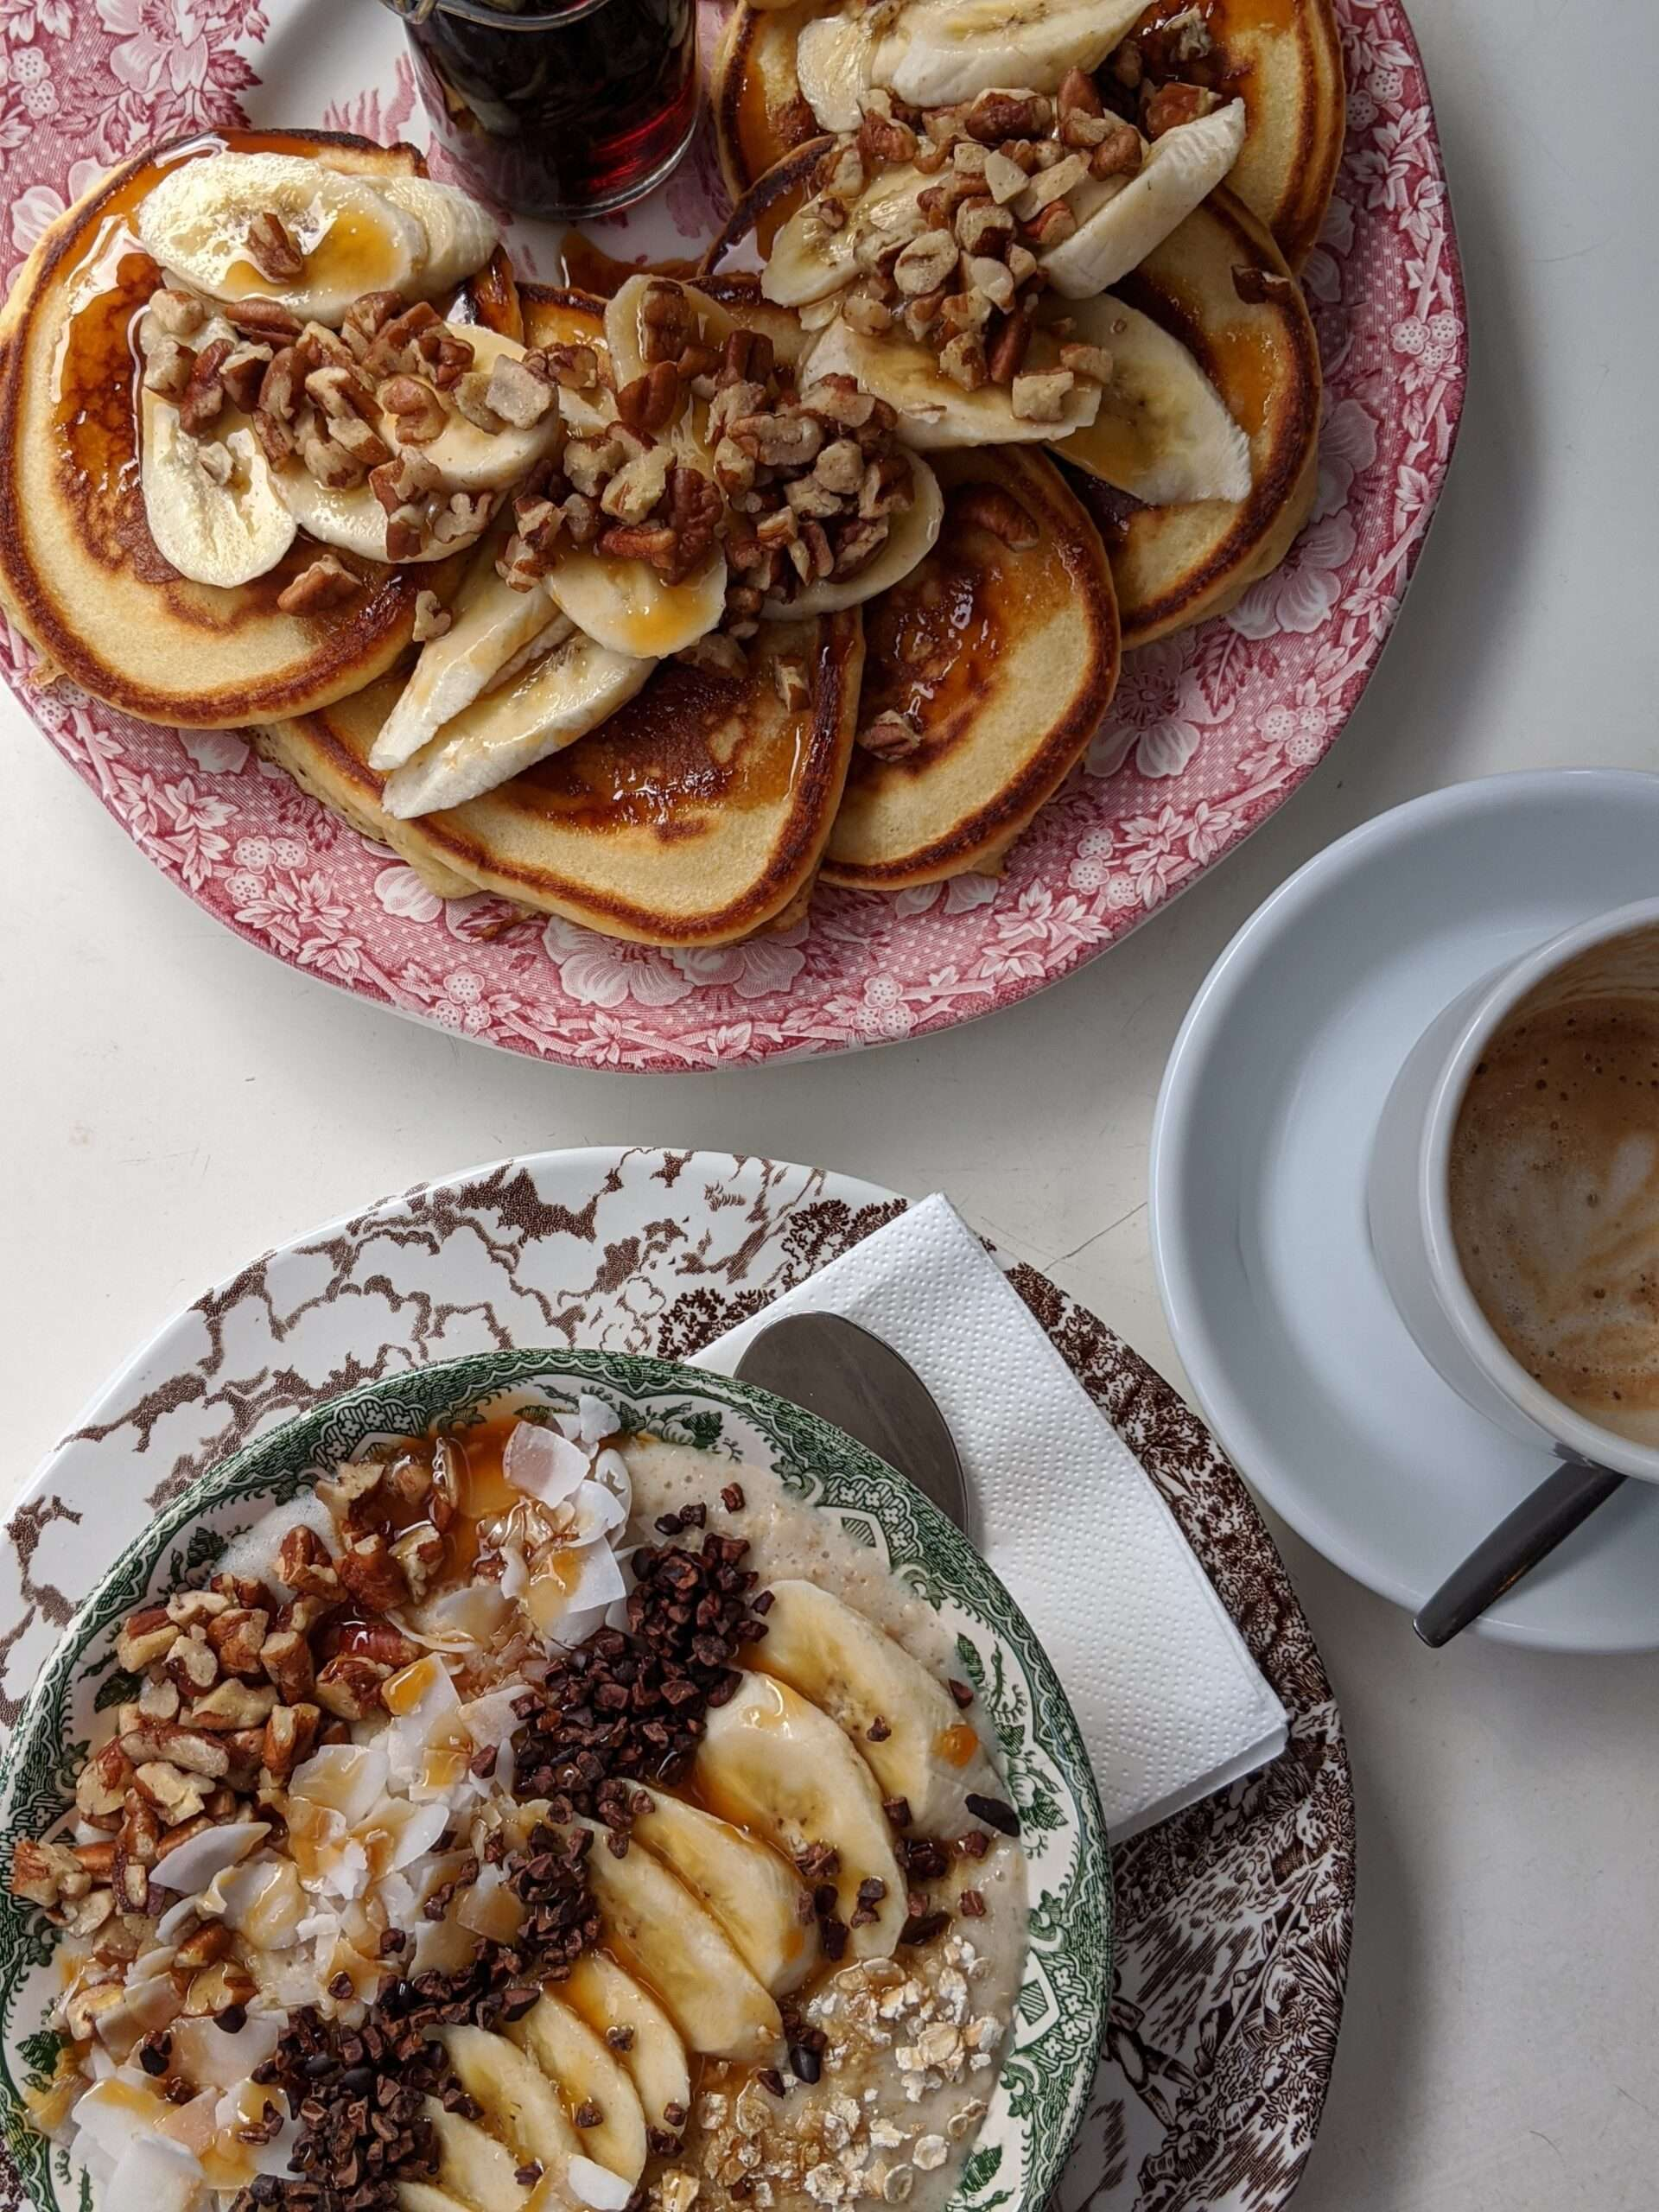 birdseye view of breakfast, pancakes with banana and chopped nuts, and oatmeal topped with fruit and nuts, plus a coffee in white cup and saucer